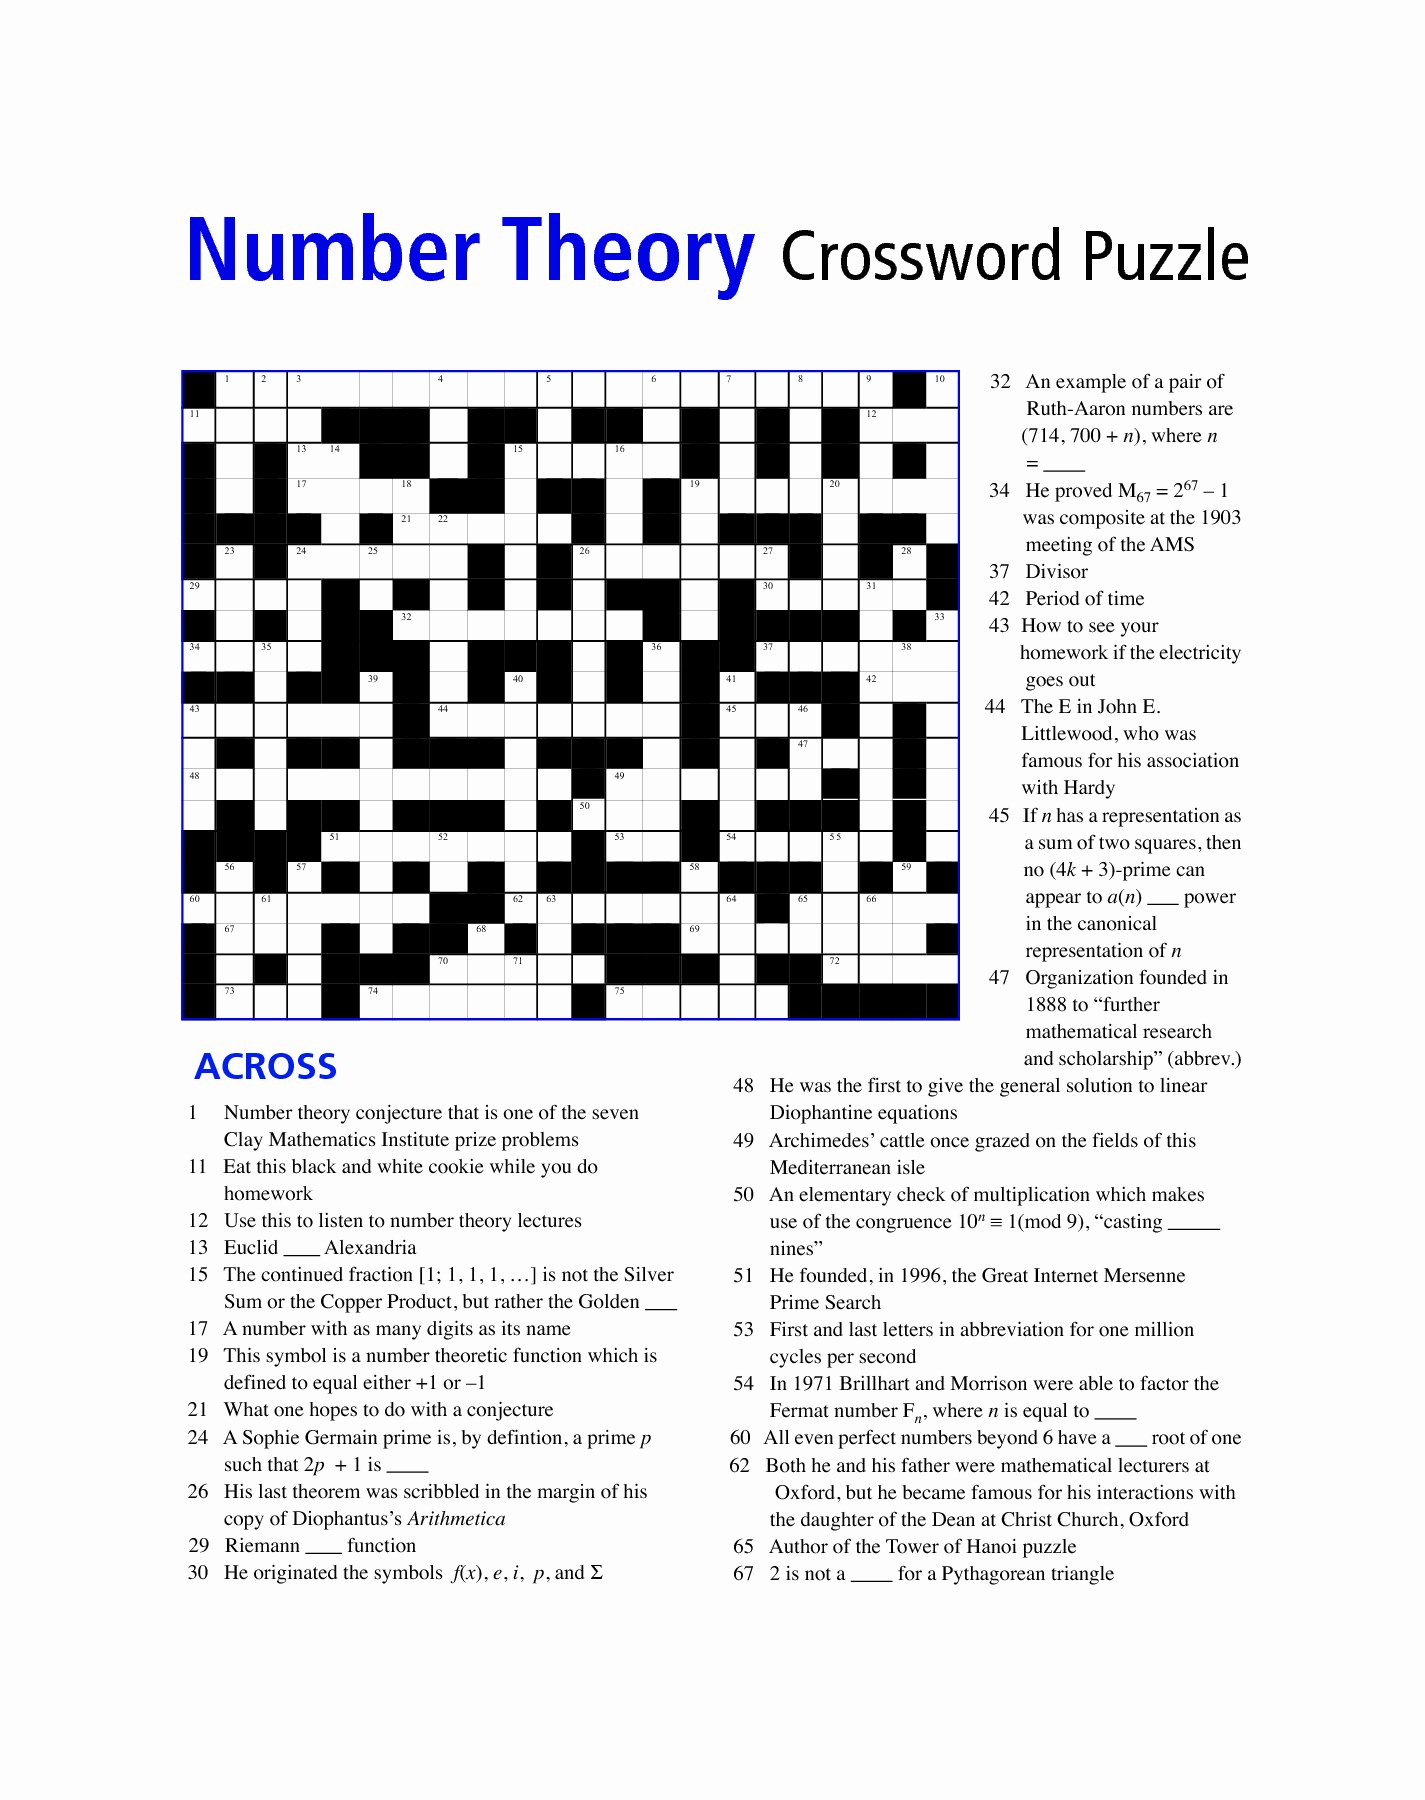 Middle School Math Puzzles Printable Ideas Math Puzzles Worksheet for Middle School